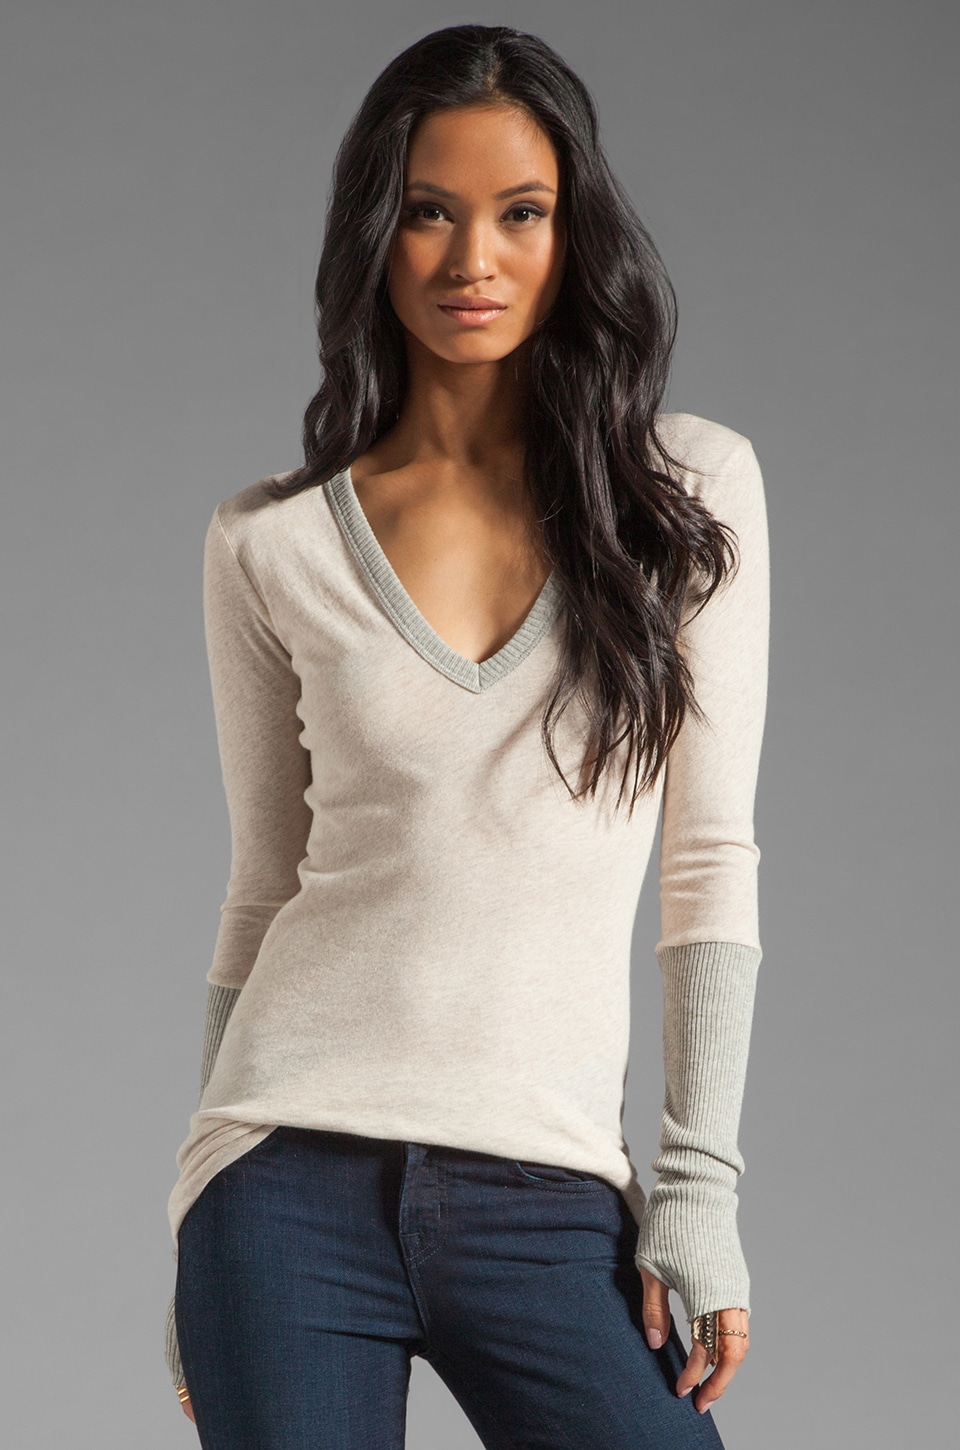 Enza Costa Cashmere Colorblock Cuffed V Neck Sweater in Oatmeal/Light Heather Grey